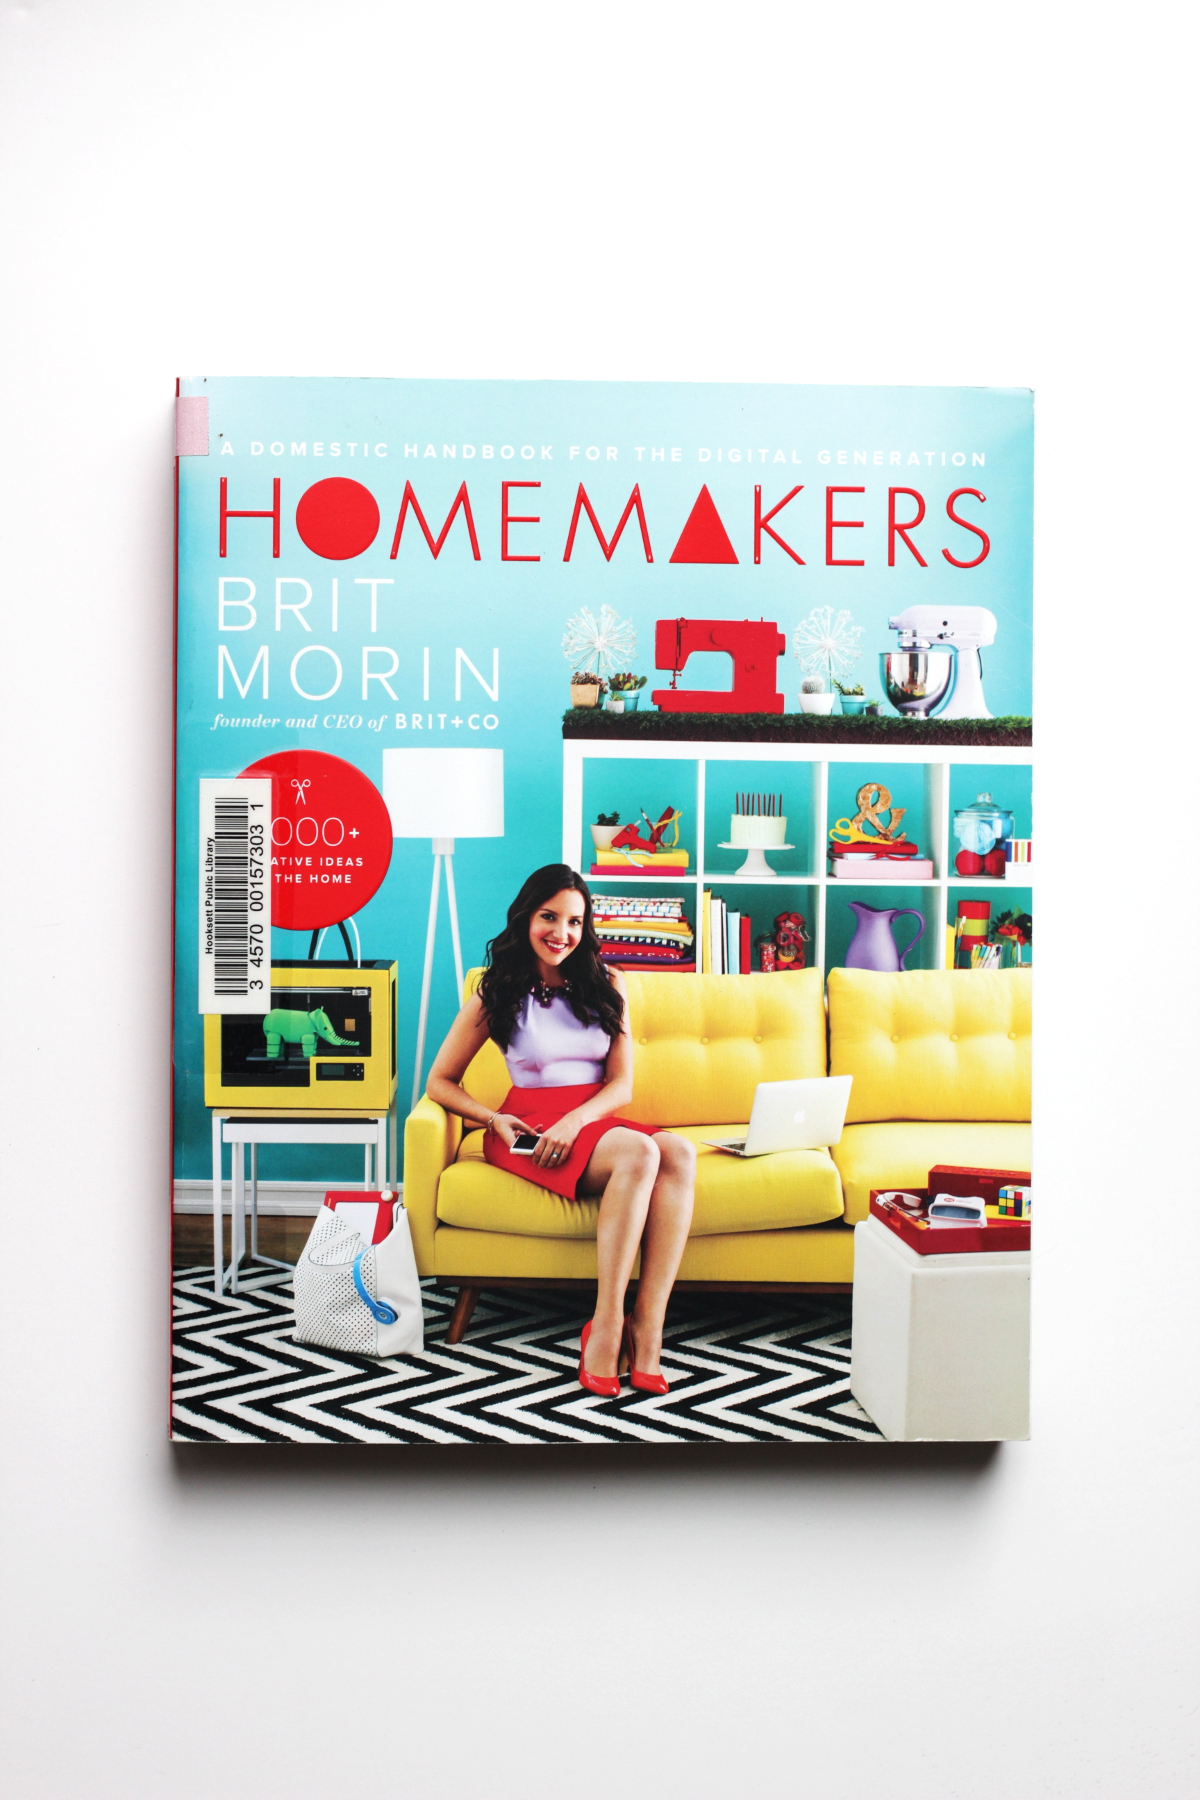 Book Review: Homemakers by Brit Morin